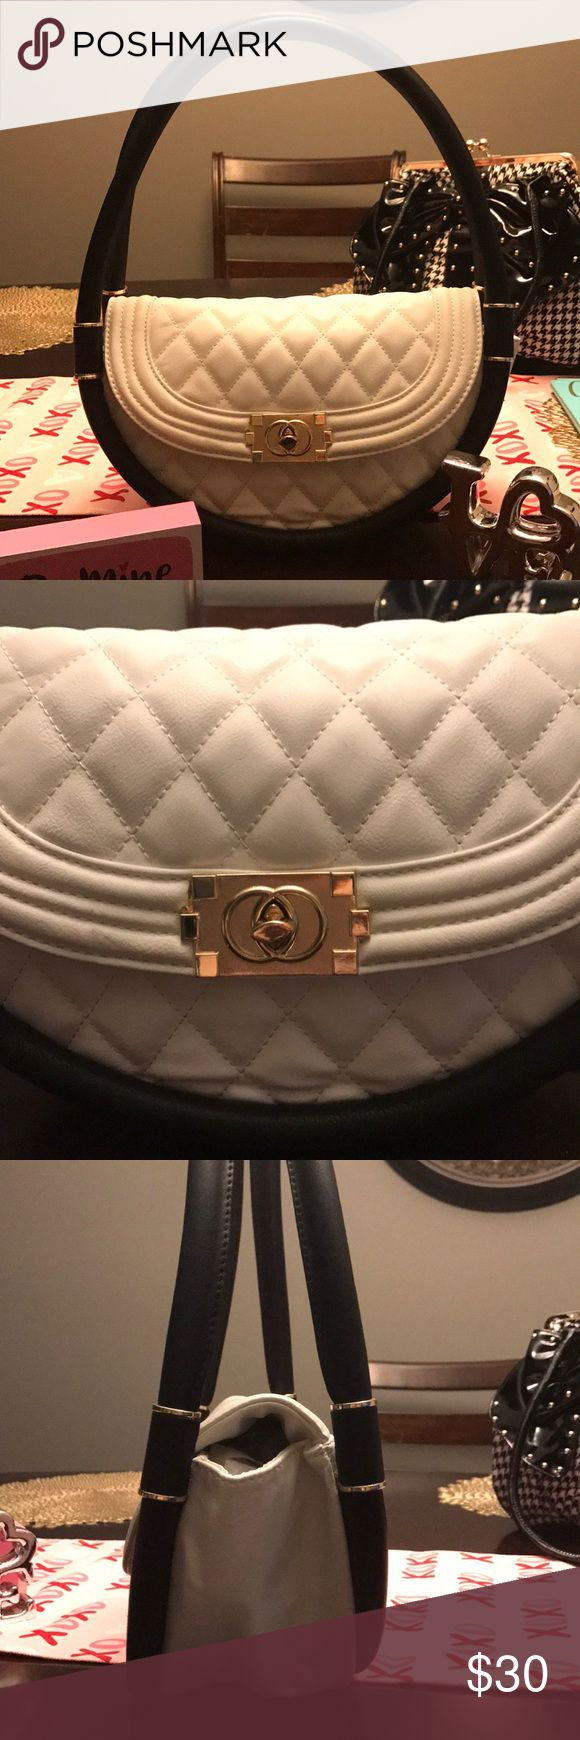 Black & White Circular Chanel Copied Purse B & W purse replica to Chanel. Front open w/ plate & knob to secure it. W fabric is sturdy & quilted pattern front to back. Bottom fabric is plain. Black oval handles go all around, there's 2 of them & they separate so it's secure if u fill it more.  Inside there's one pocket that has a zipper. Pics showing different measurements of several angles. It's a shoulder strap from your shoulder down to above your hip. Gold accents on clasp & center of…